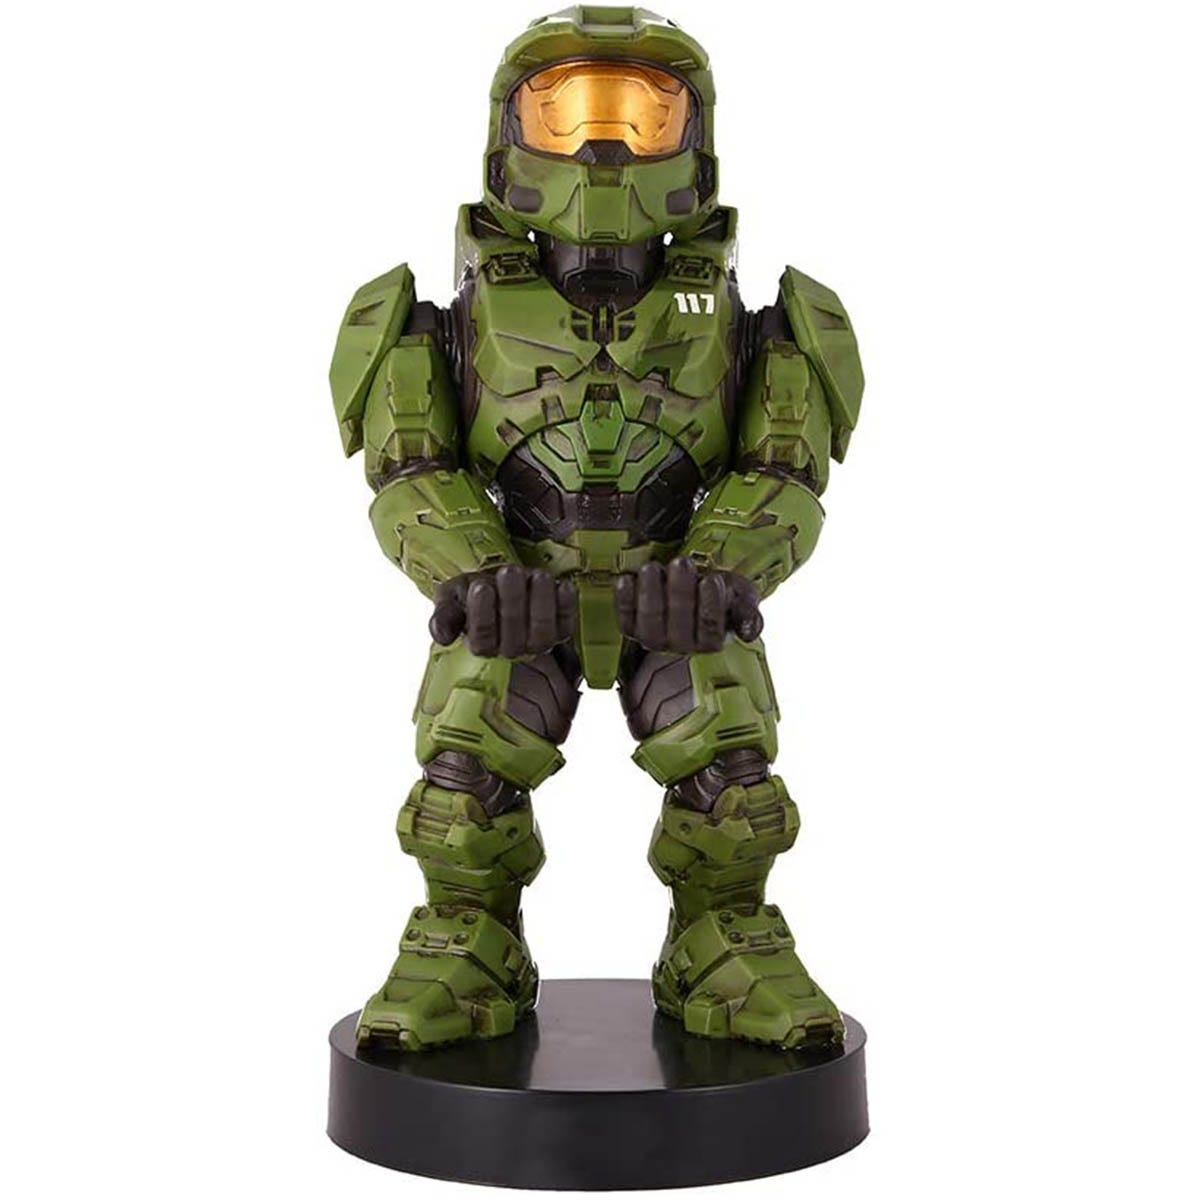 Cable Guys Master Chief Infinite Cable Guy - Xbox Series X Controller/Phone Holder